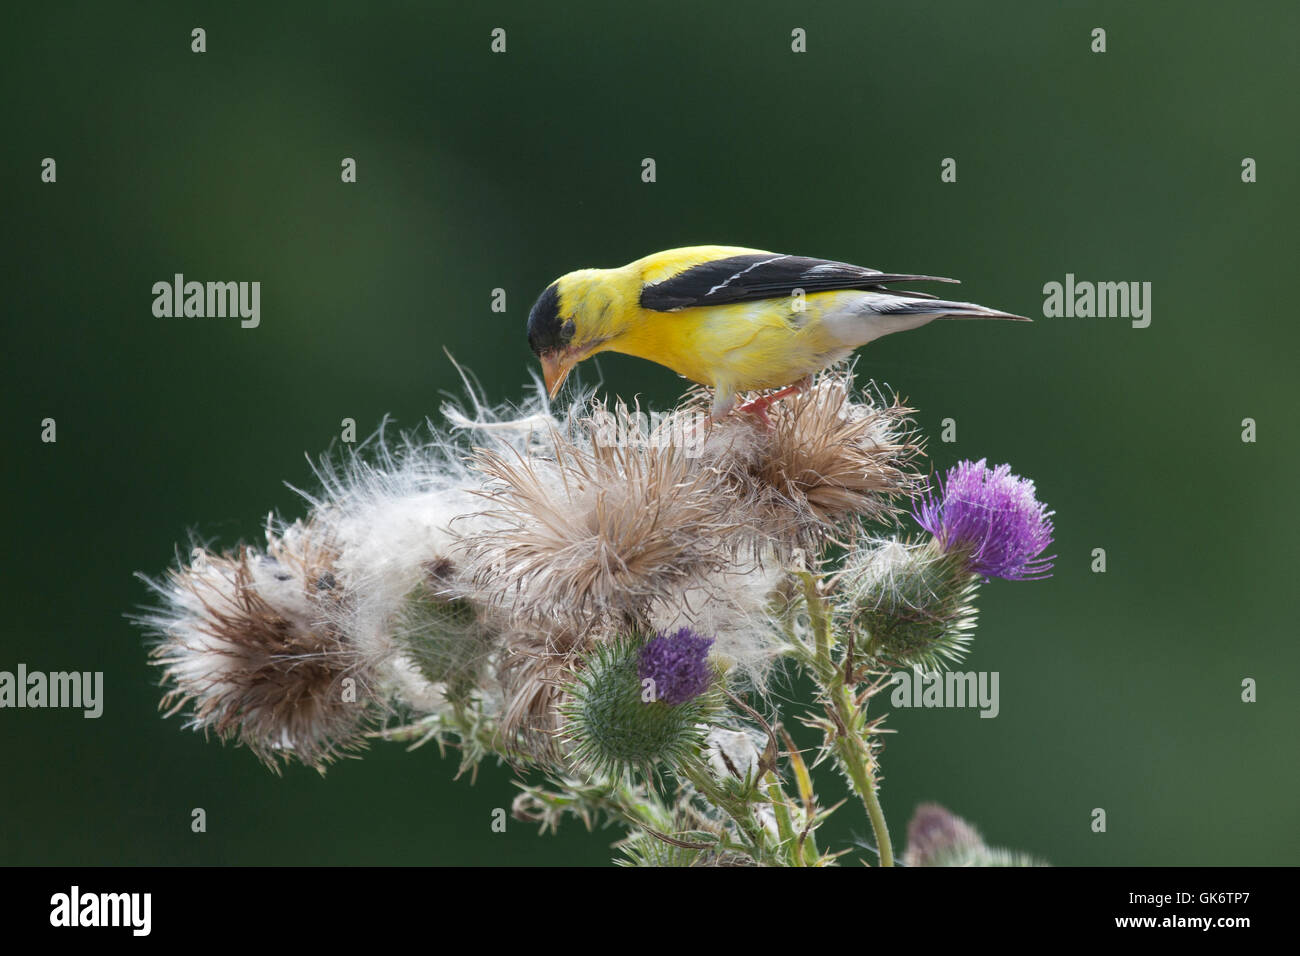 Goldfinch gathers nesting material from thistle plant - Stock Image